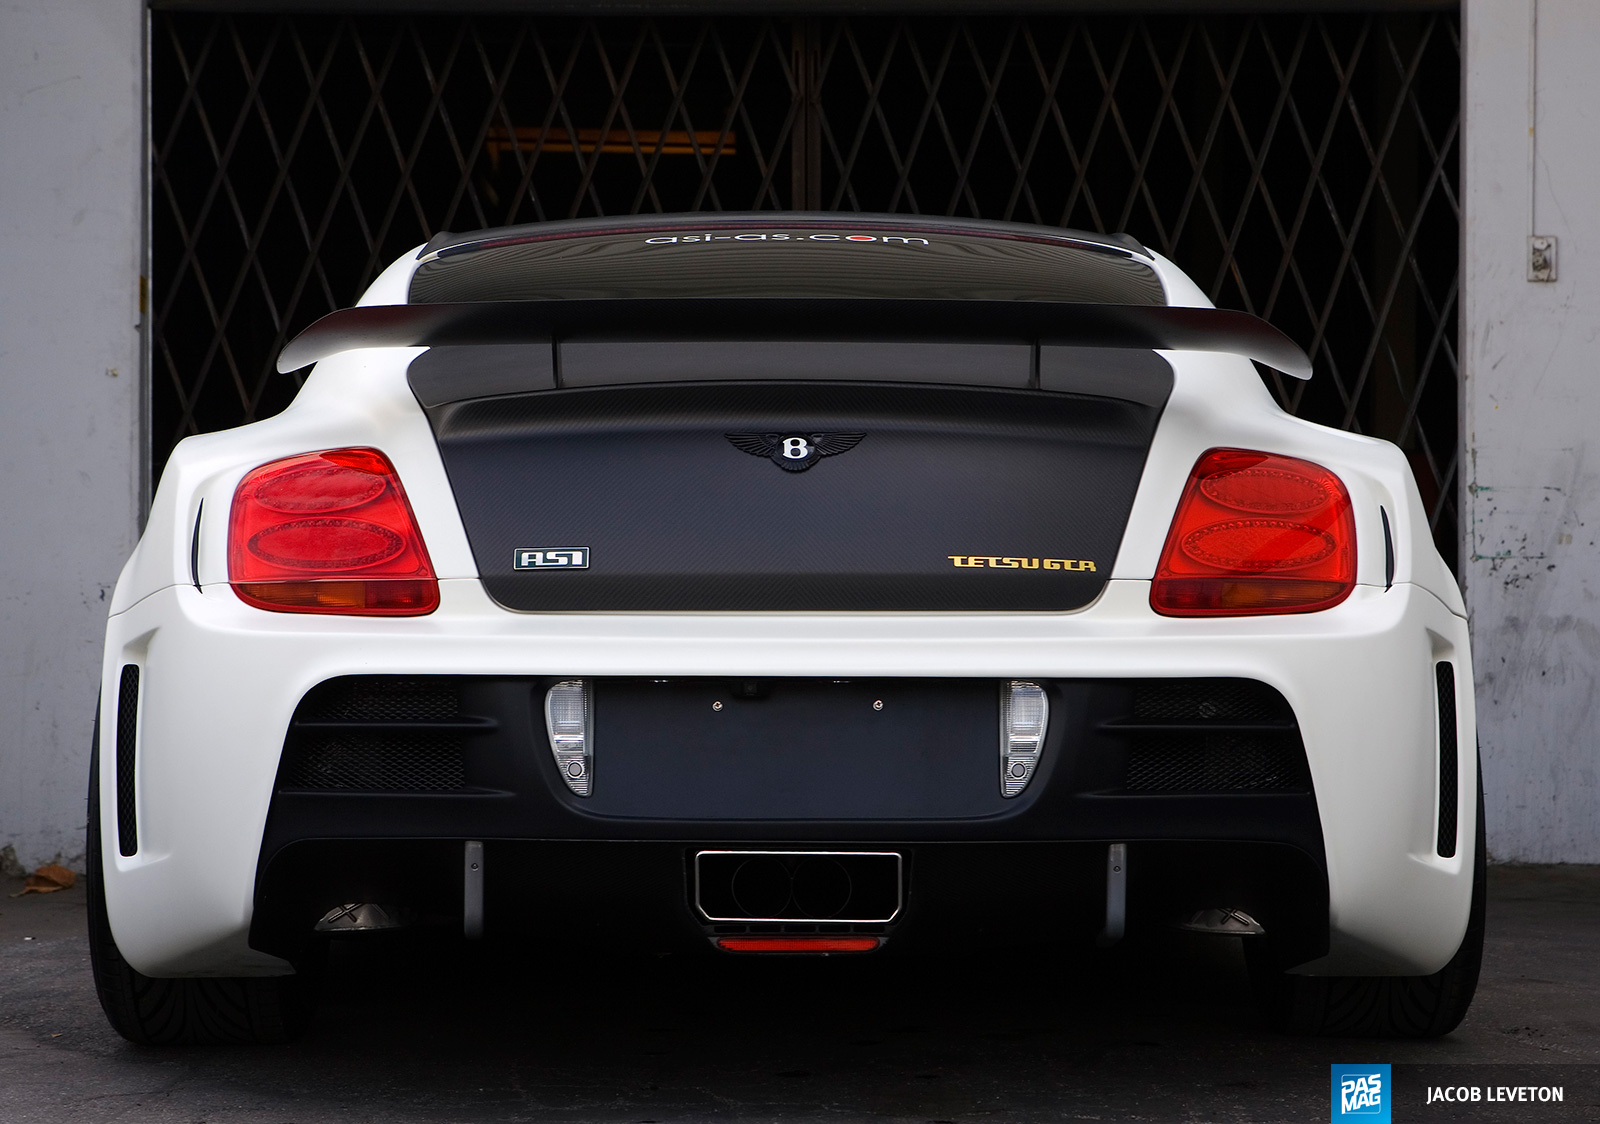 10 ASI Bentley GTR pasmag